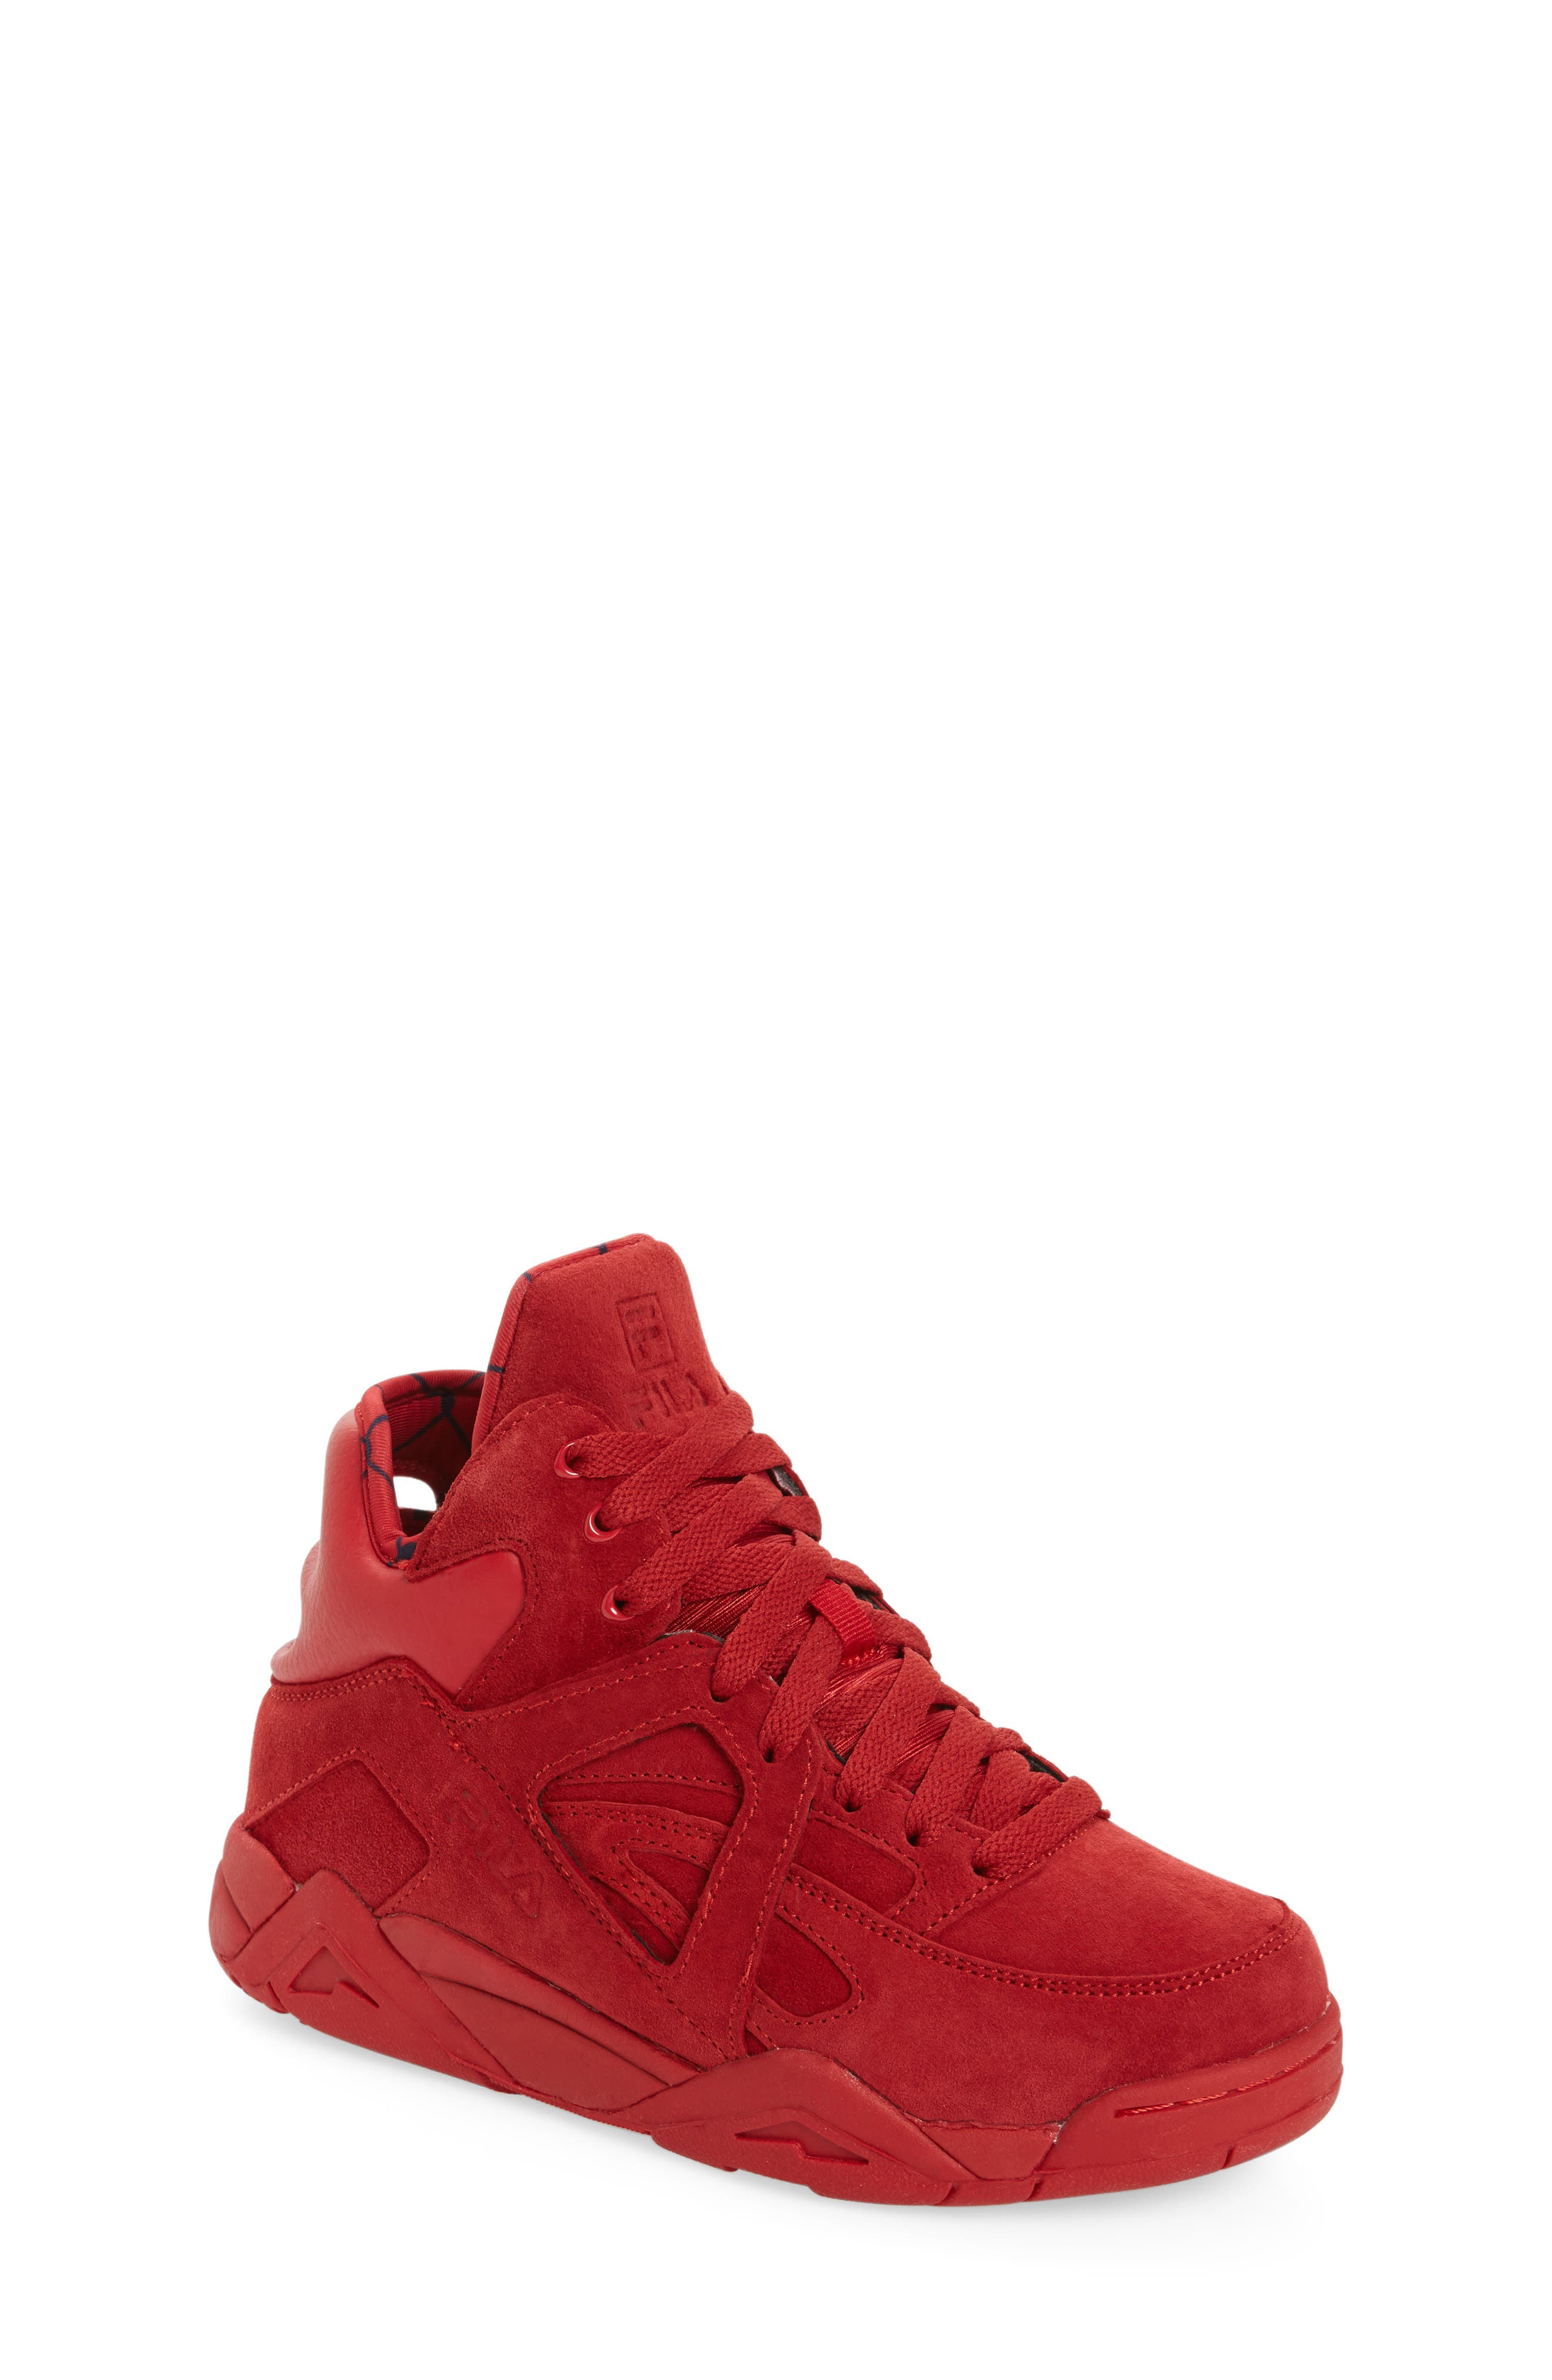 FILA The Cage High Top Sneaker, Main, color, RED SUEDE